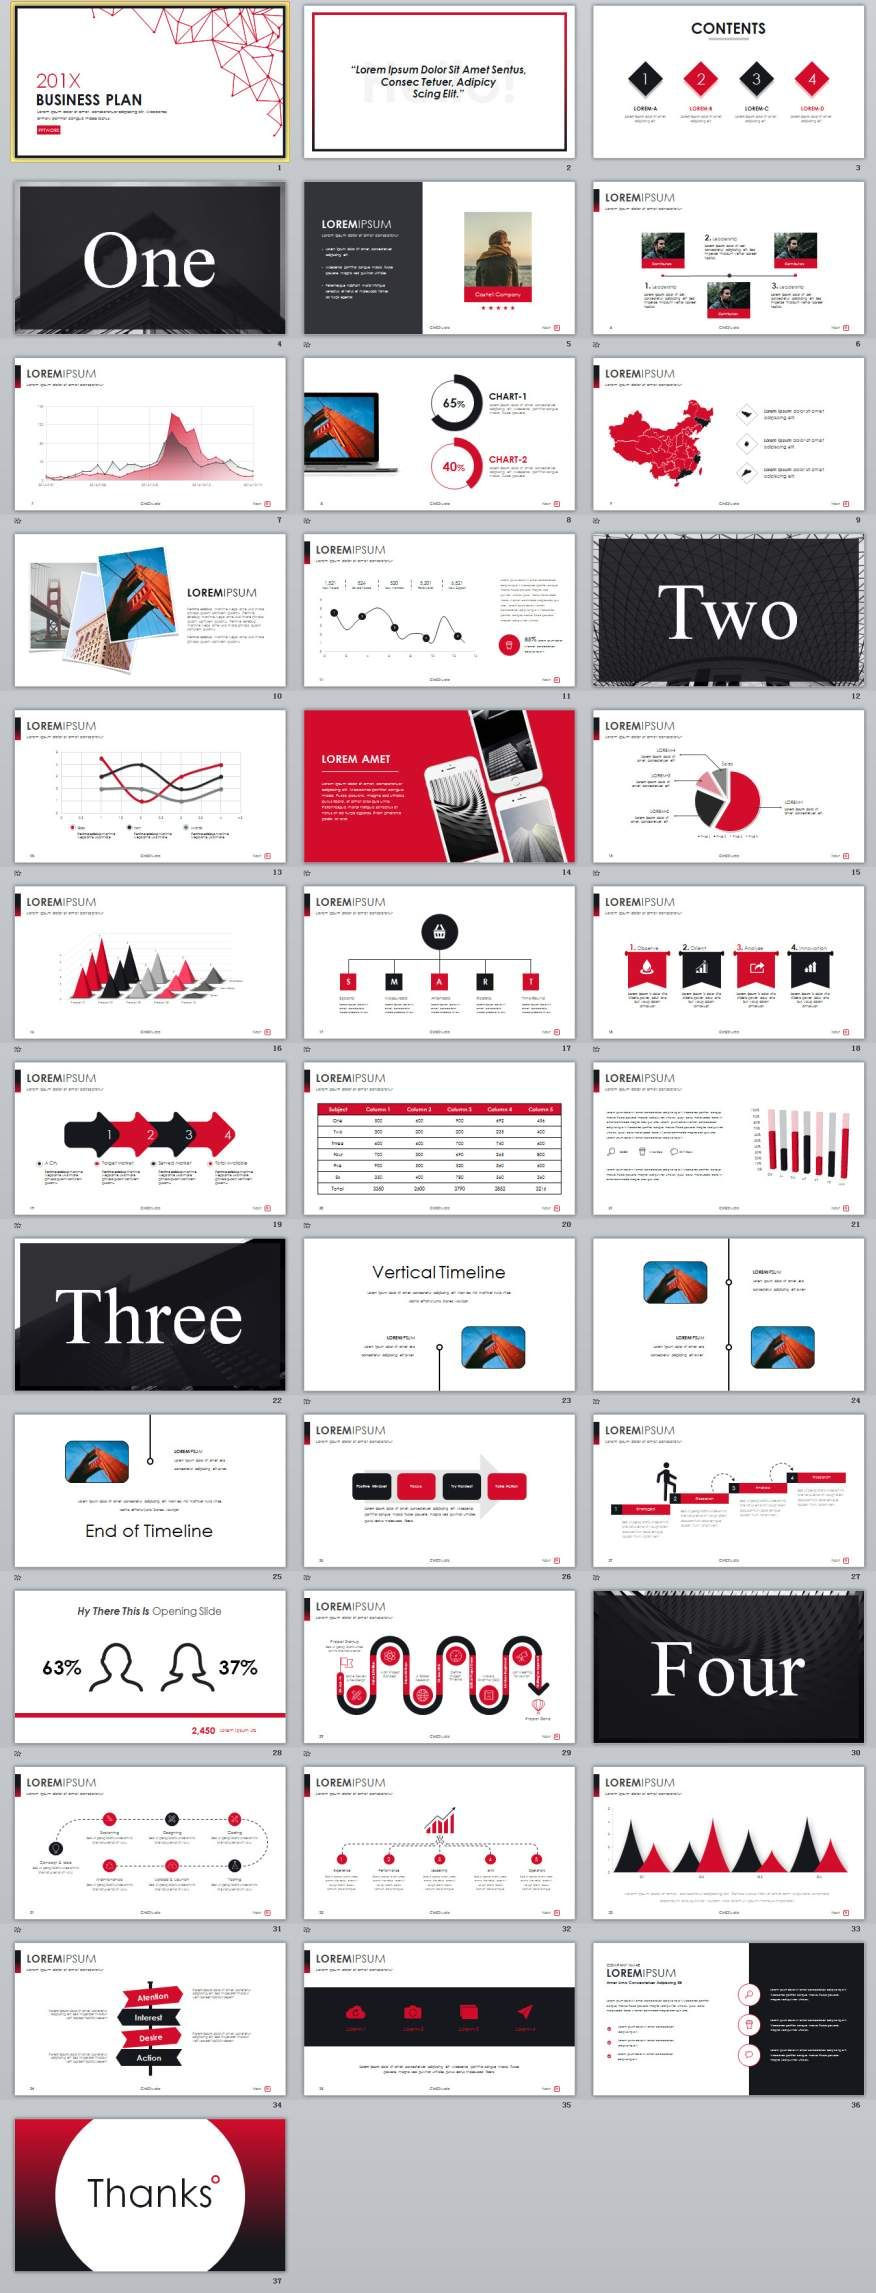 Best Business Plan Powerpoint Templates   Business